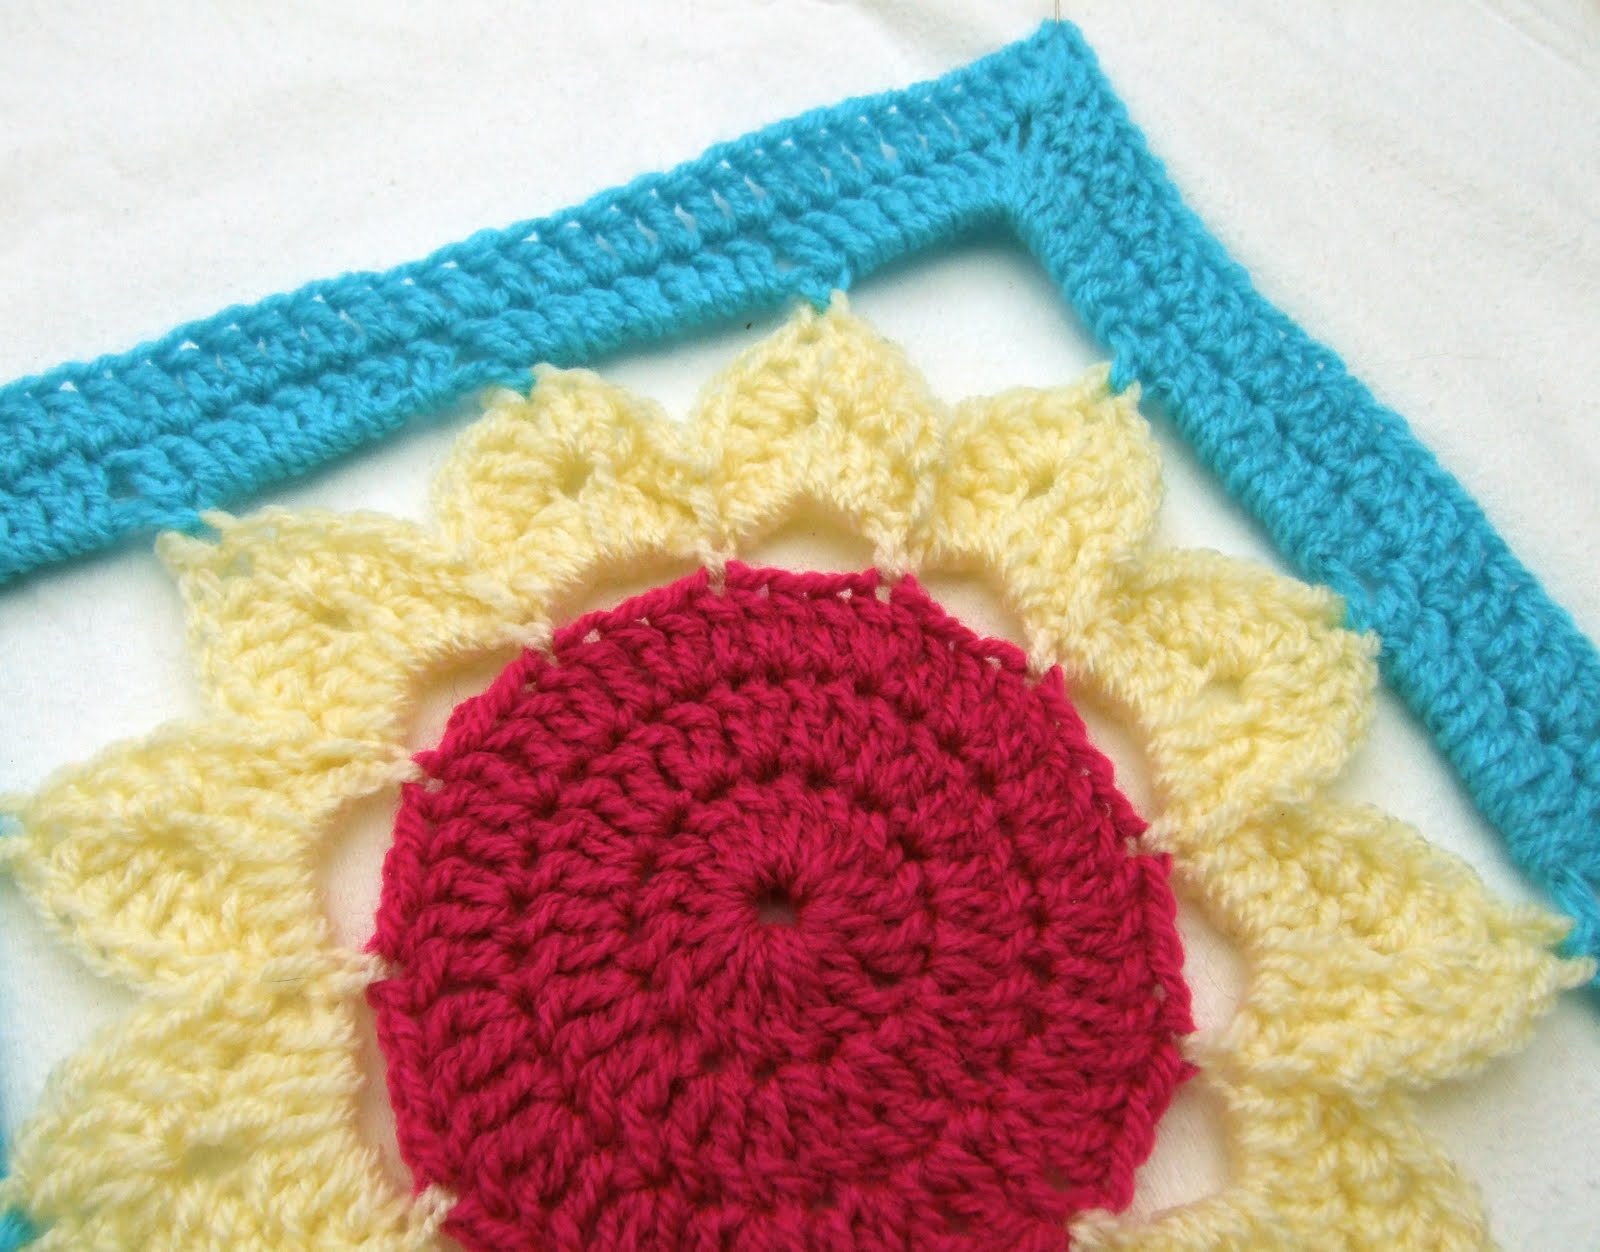 RAKJpatterns | Creative Crochet Patterns | RAKJ Patterns